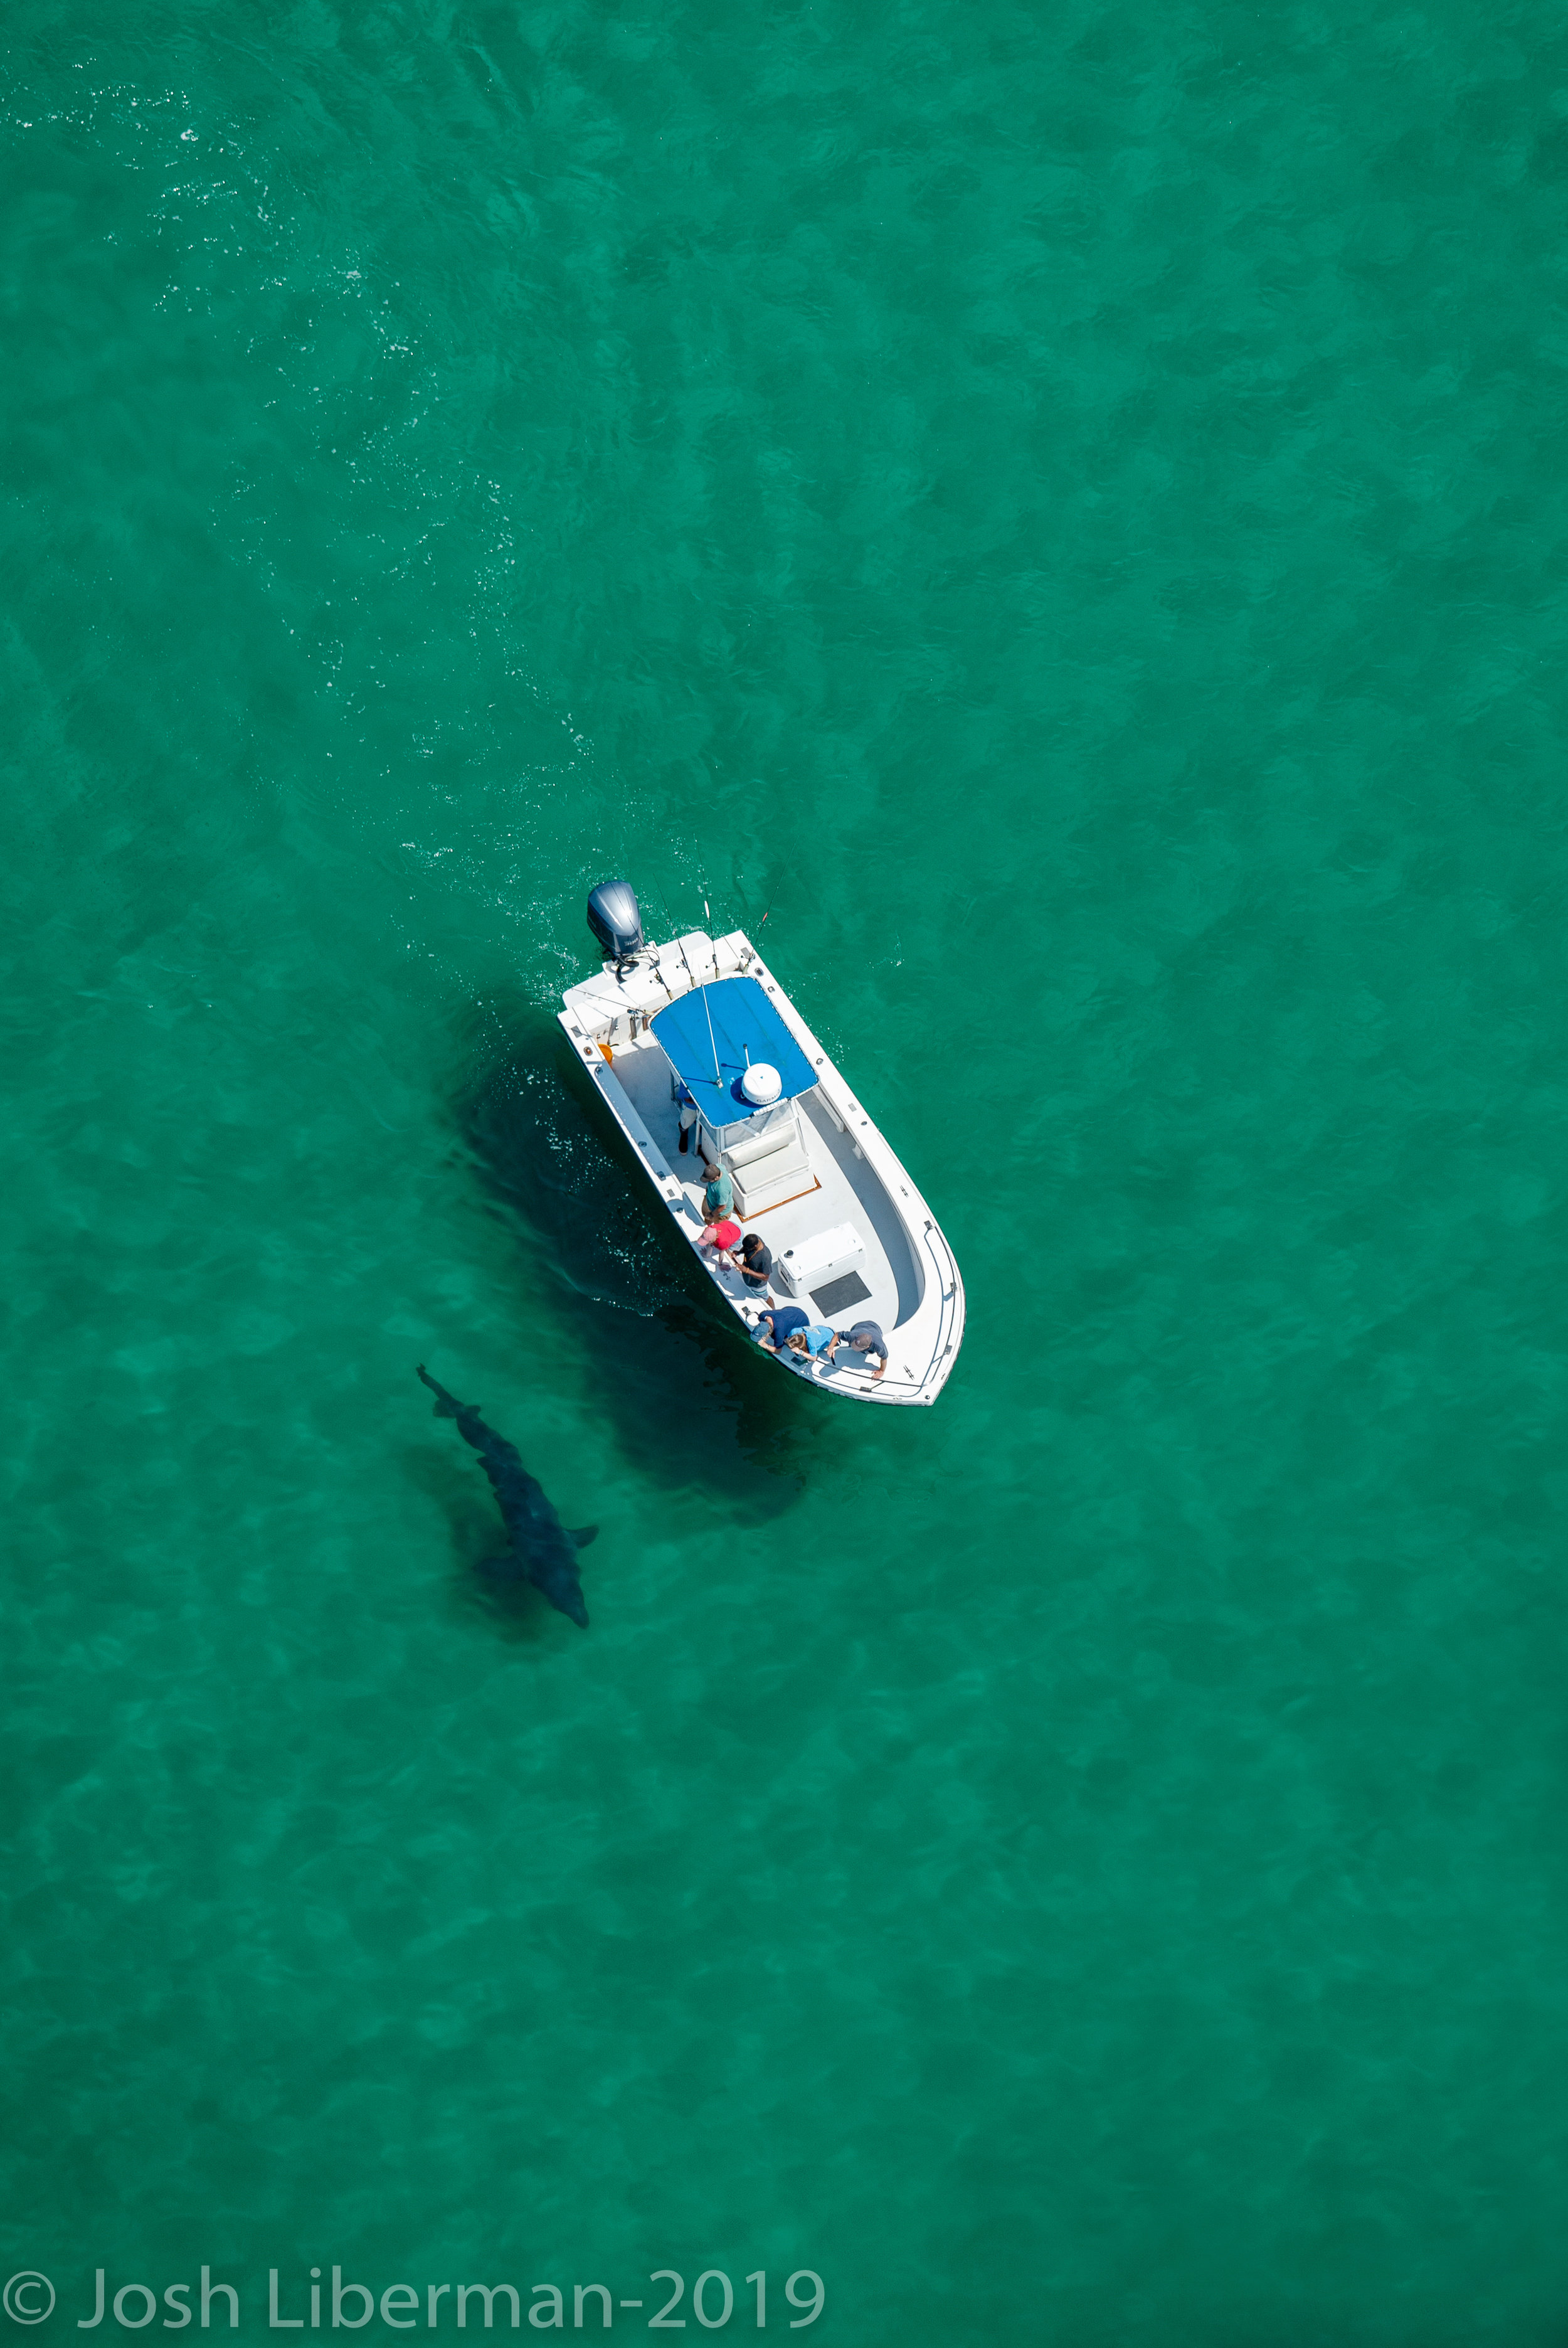 Visitors on an eco-tourism boat get a close look at a large white shark off the coast of Cape Cod.